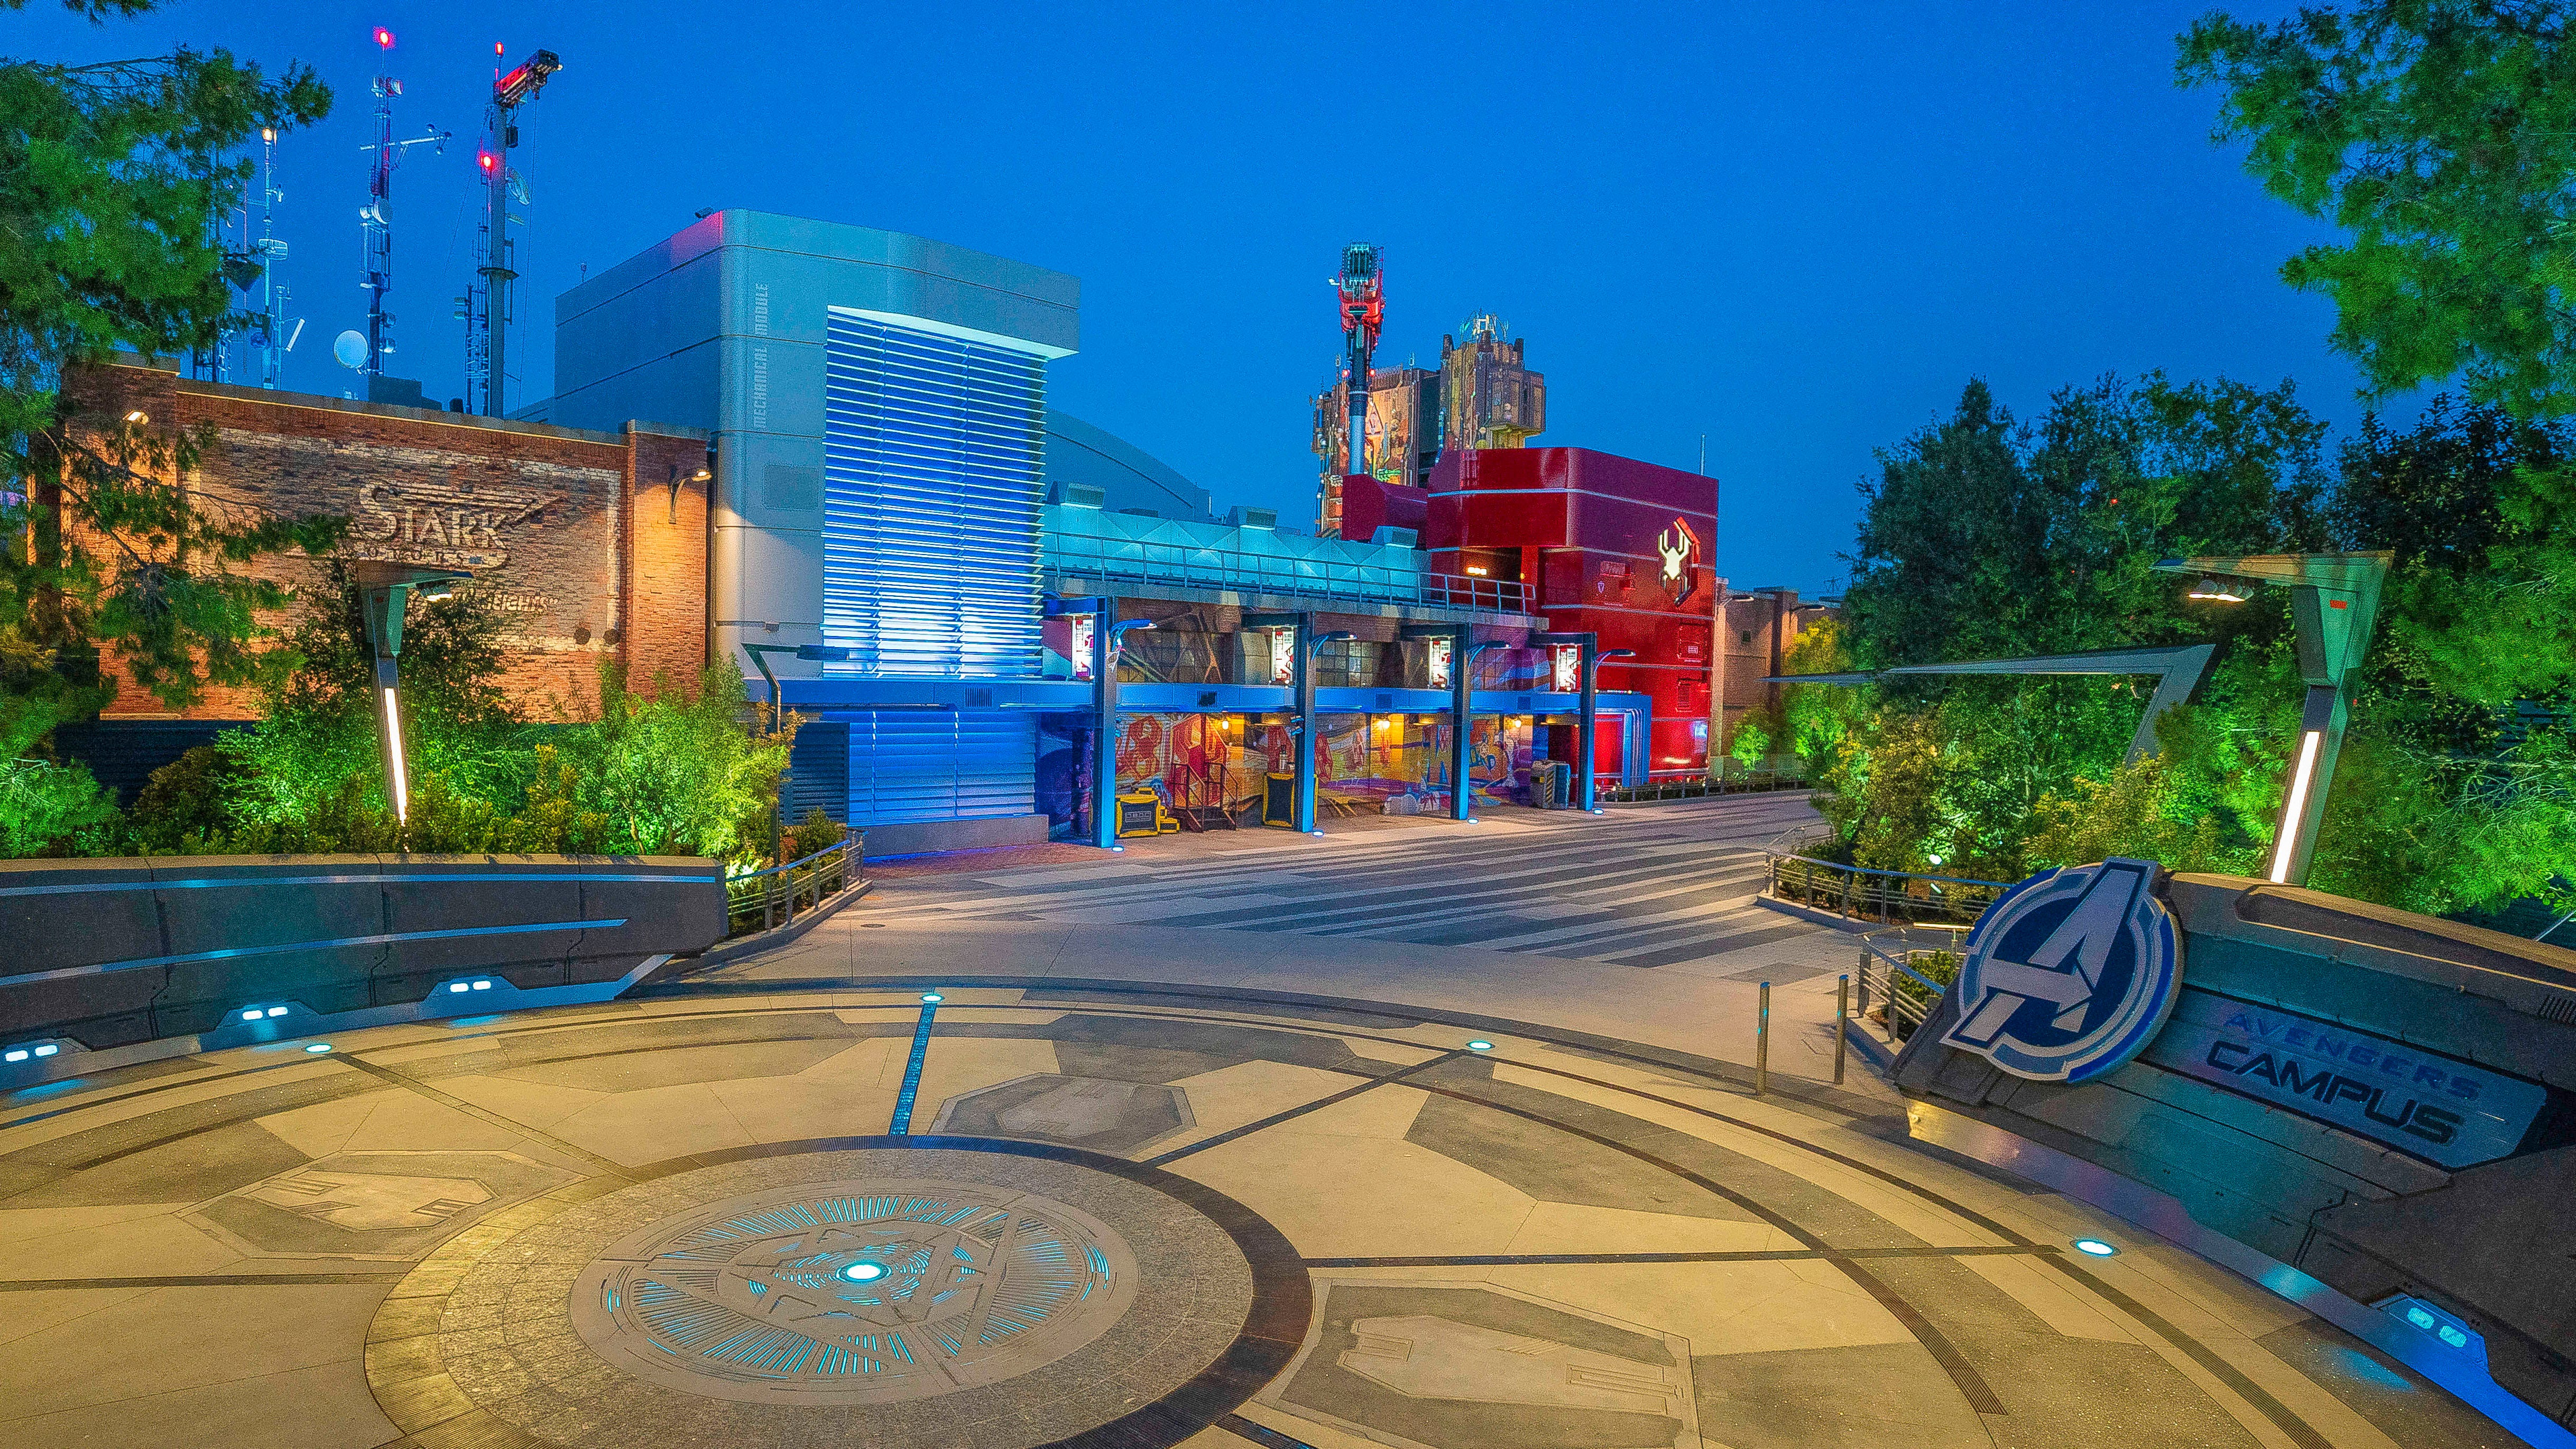 Disneyland's Avenger's Campus opens with a new Spider-Man attraction